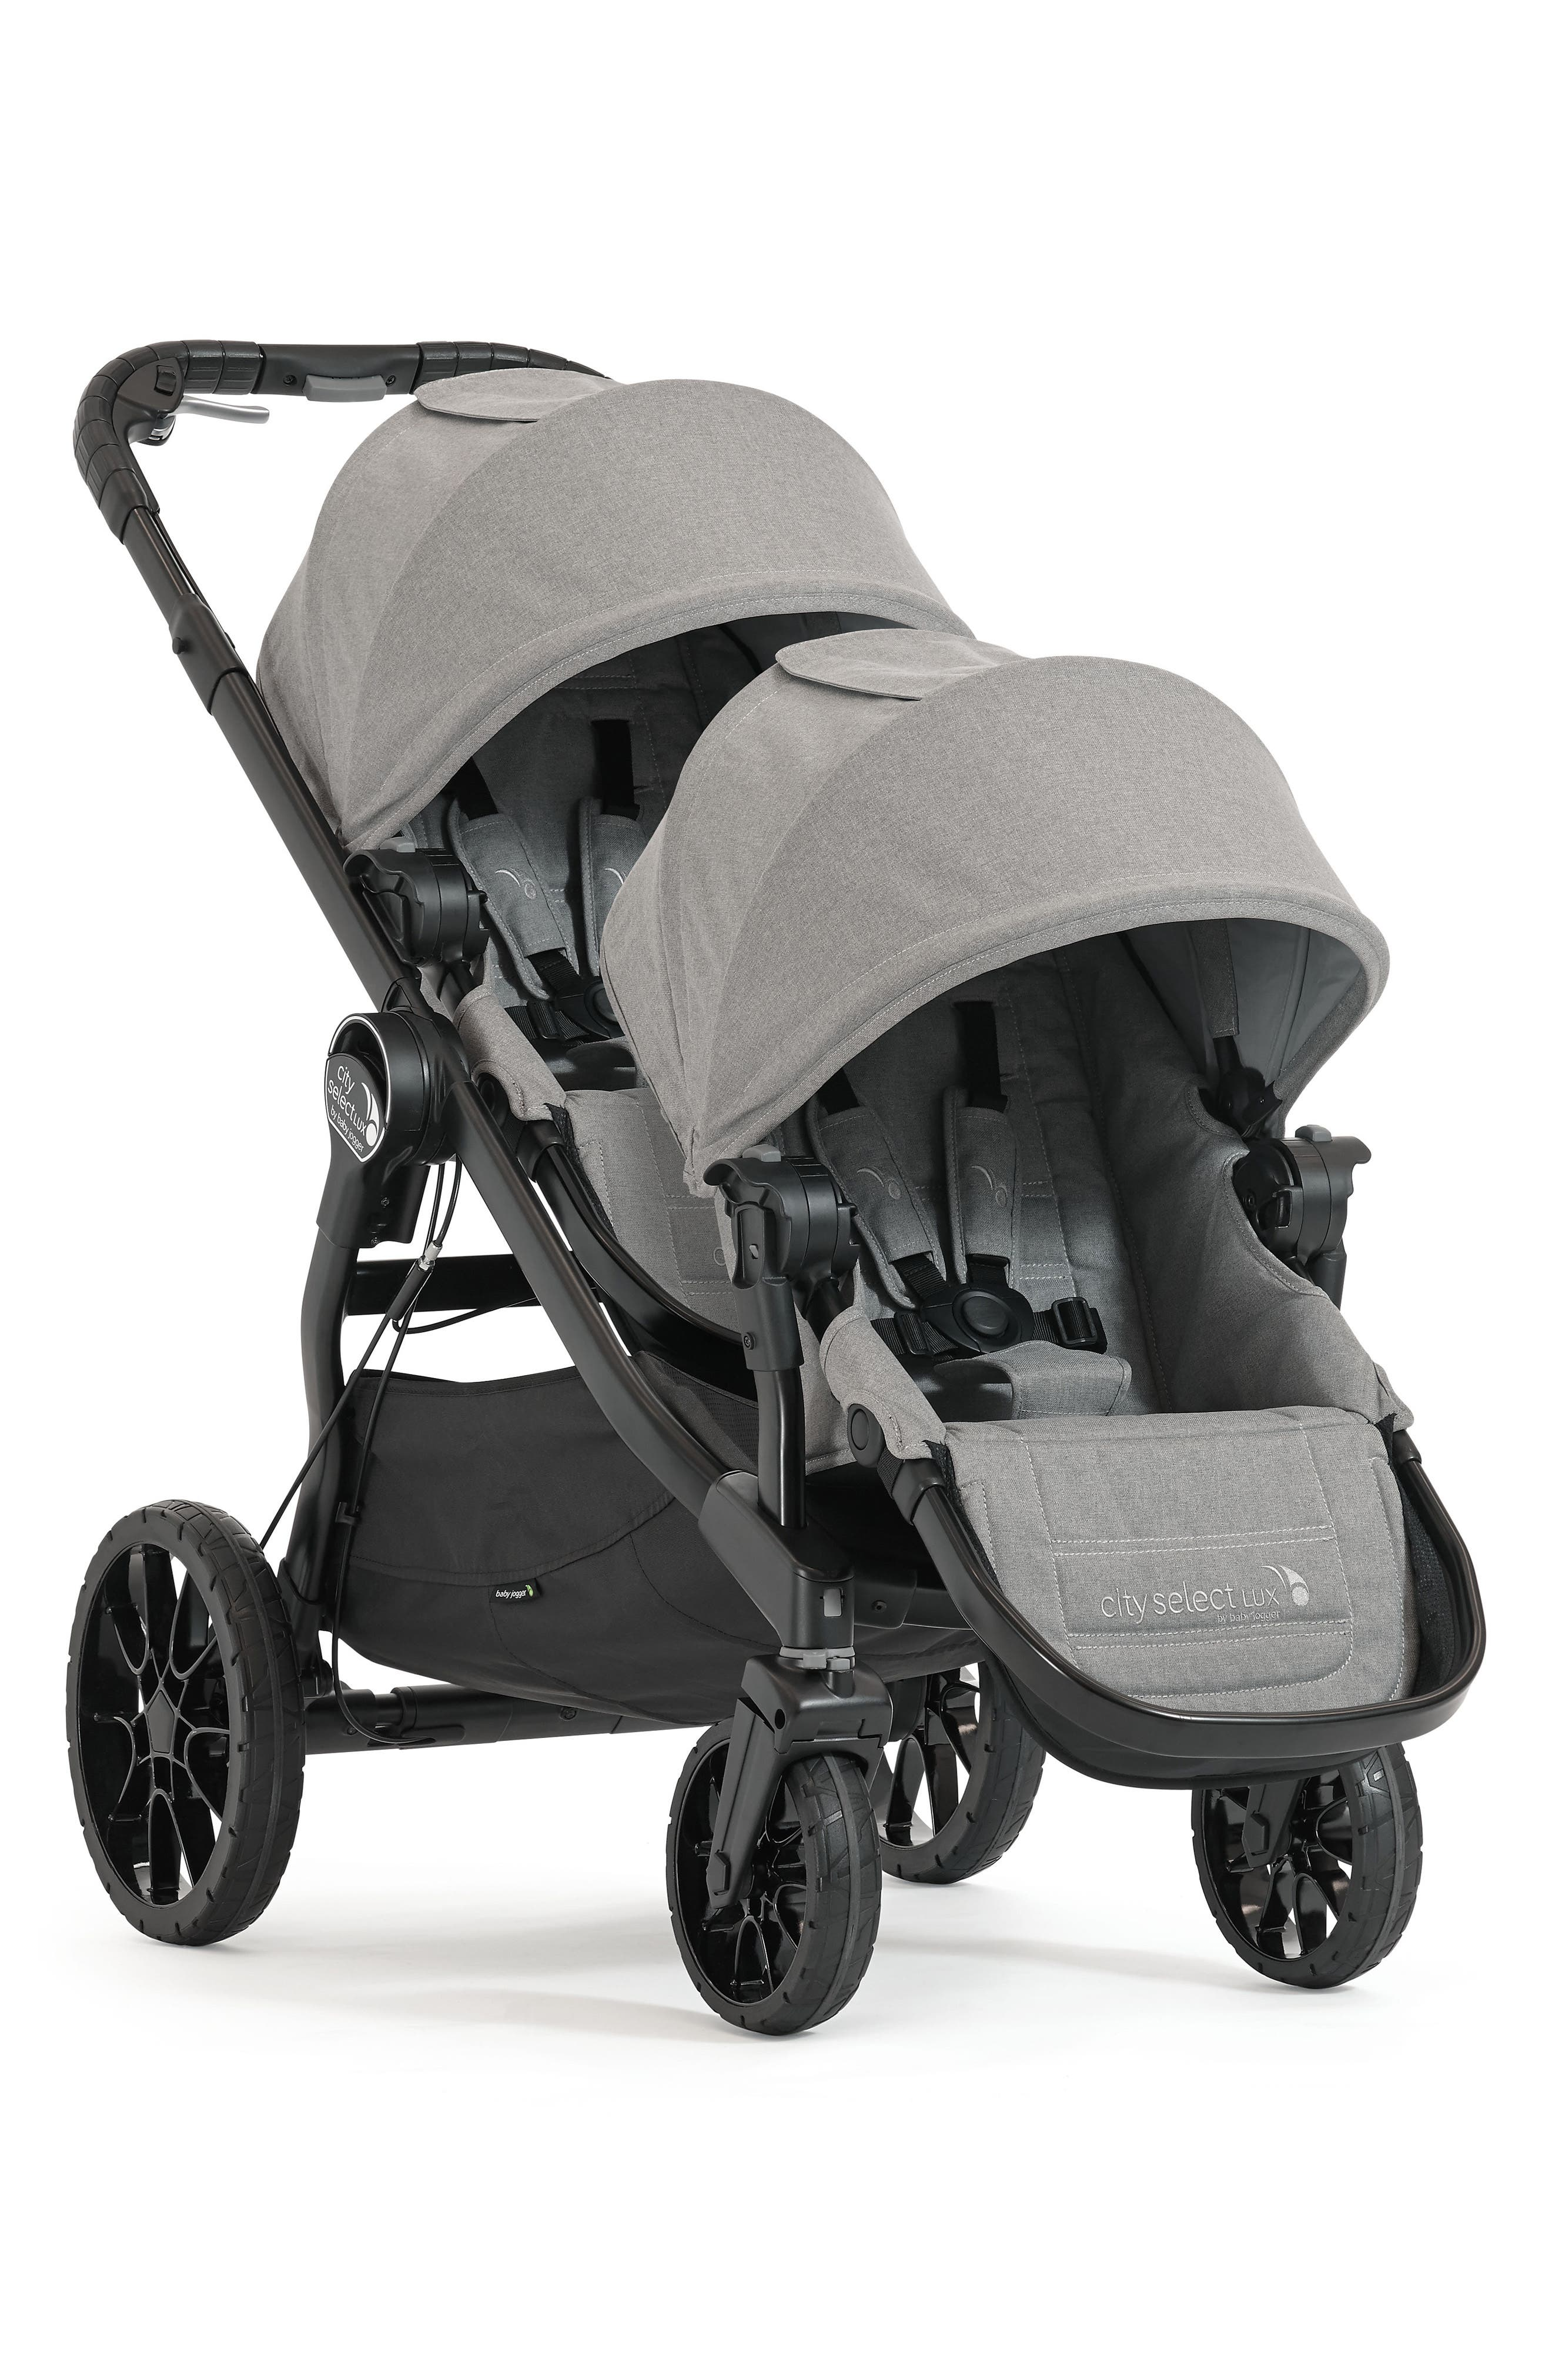 City Select<sup>®</sup> LUX Stroller with Second Seat,                         Main,                         color, Slate